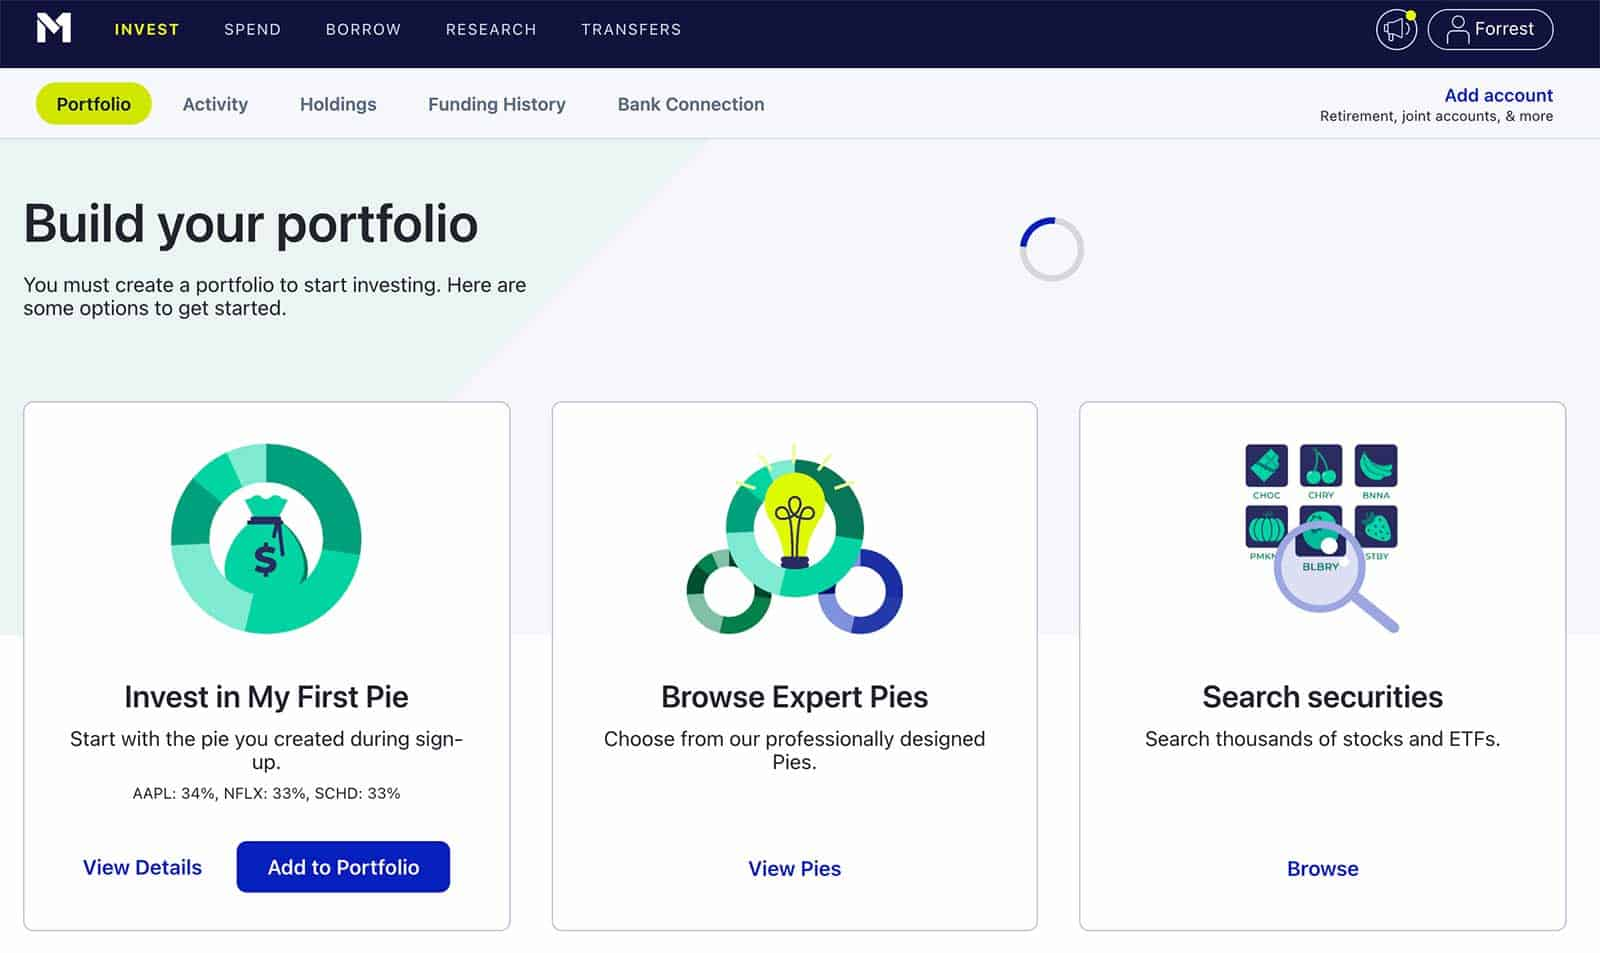 M1 Finance Overview